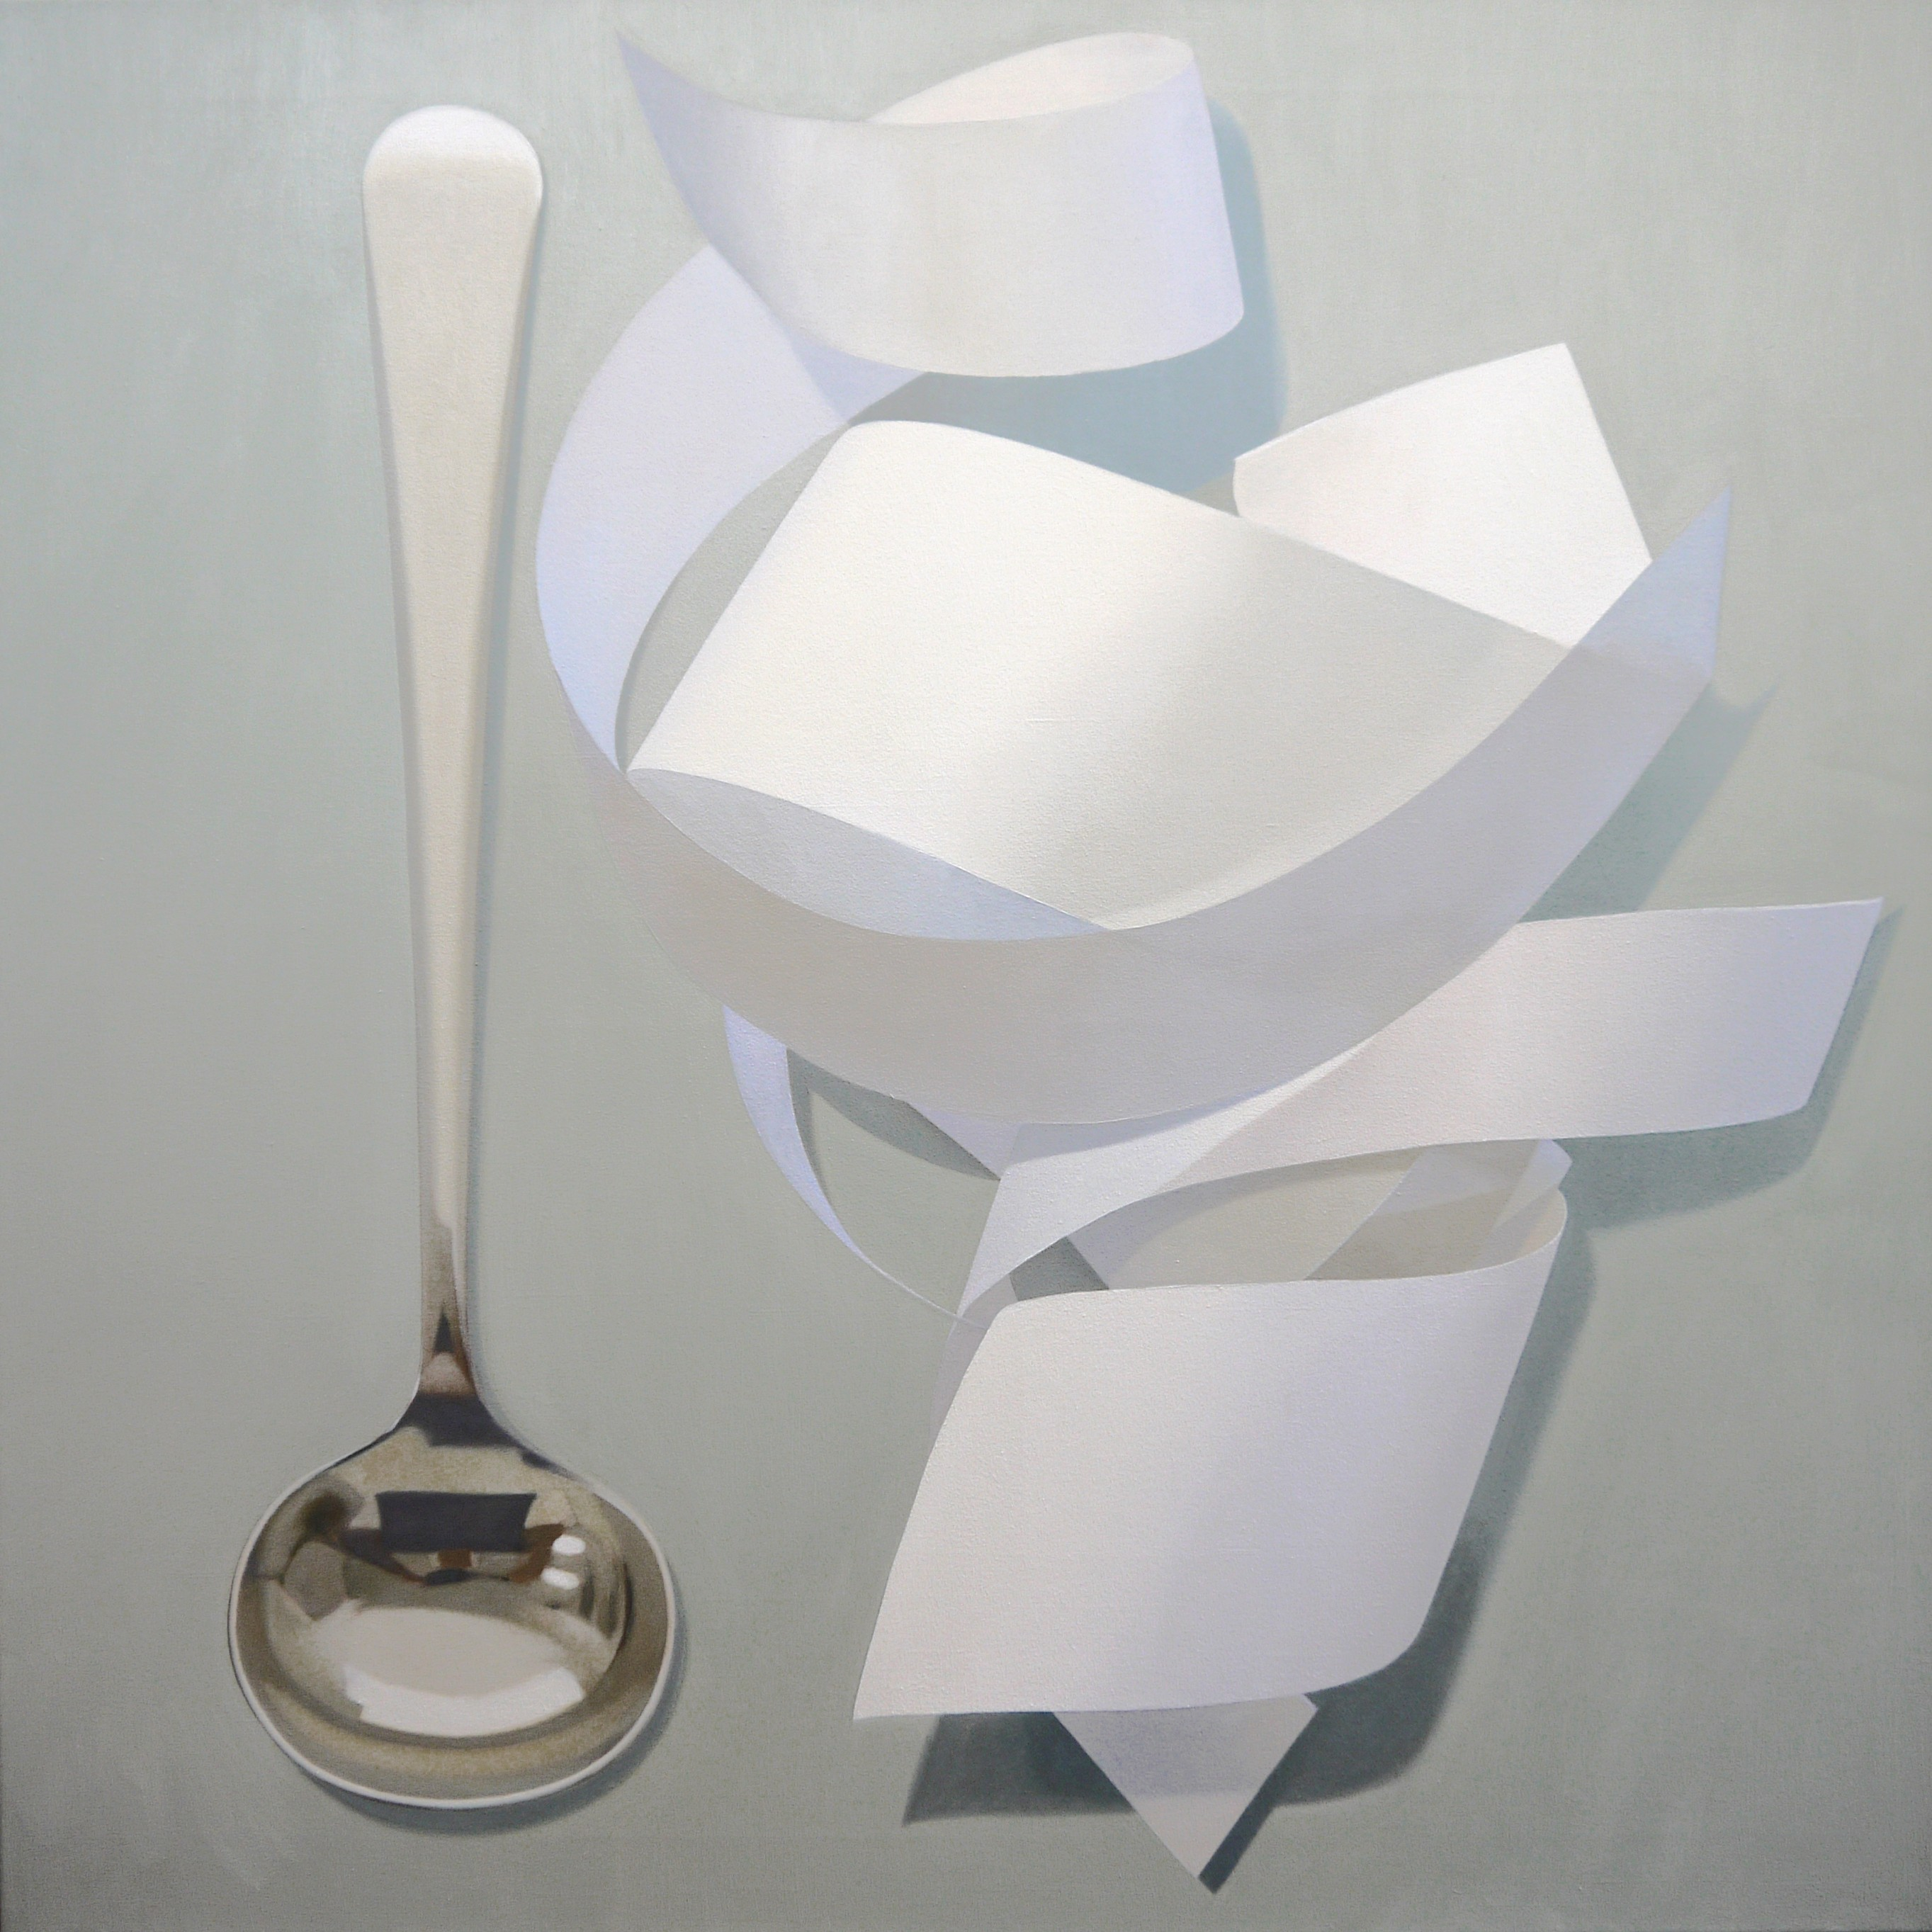 Spoon and Paper